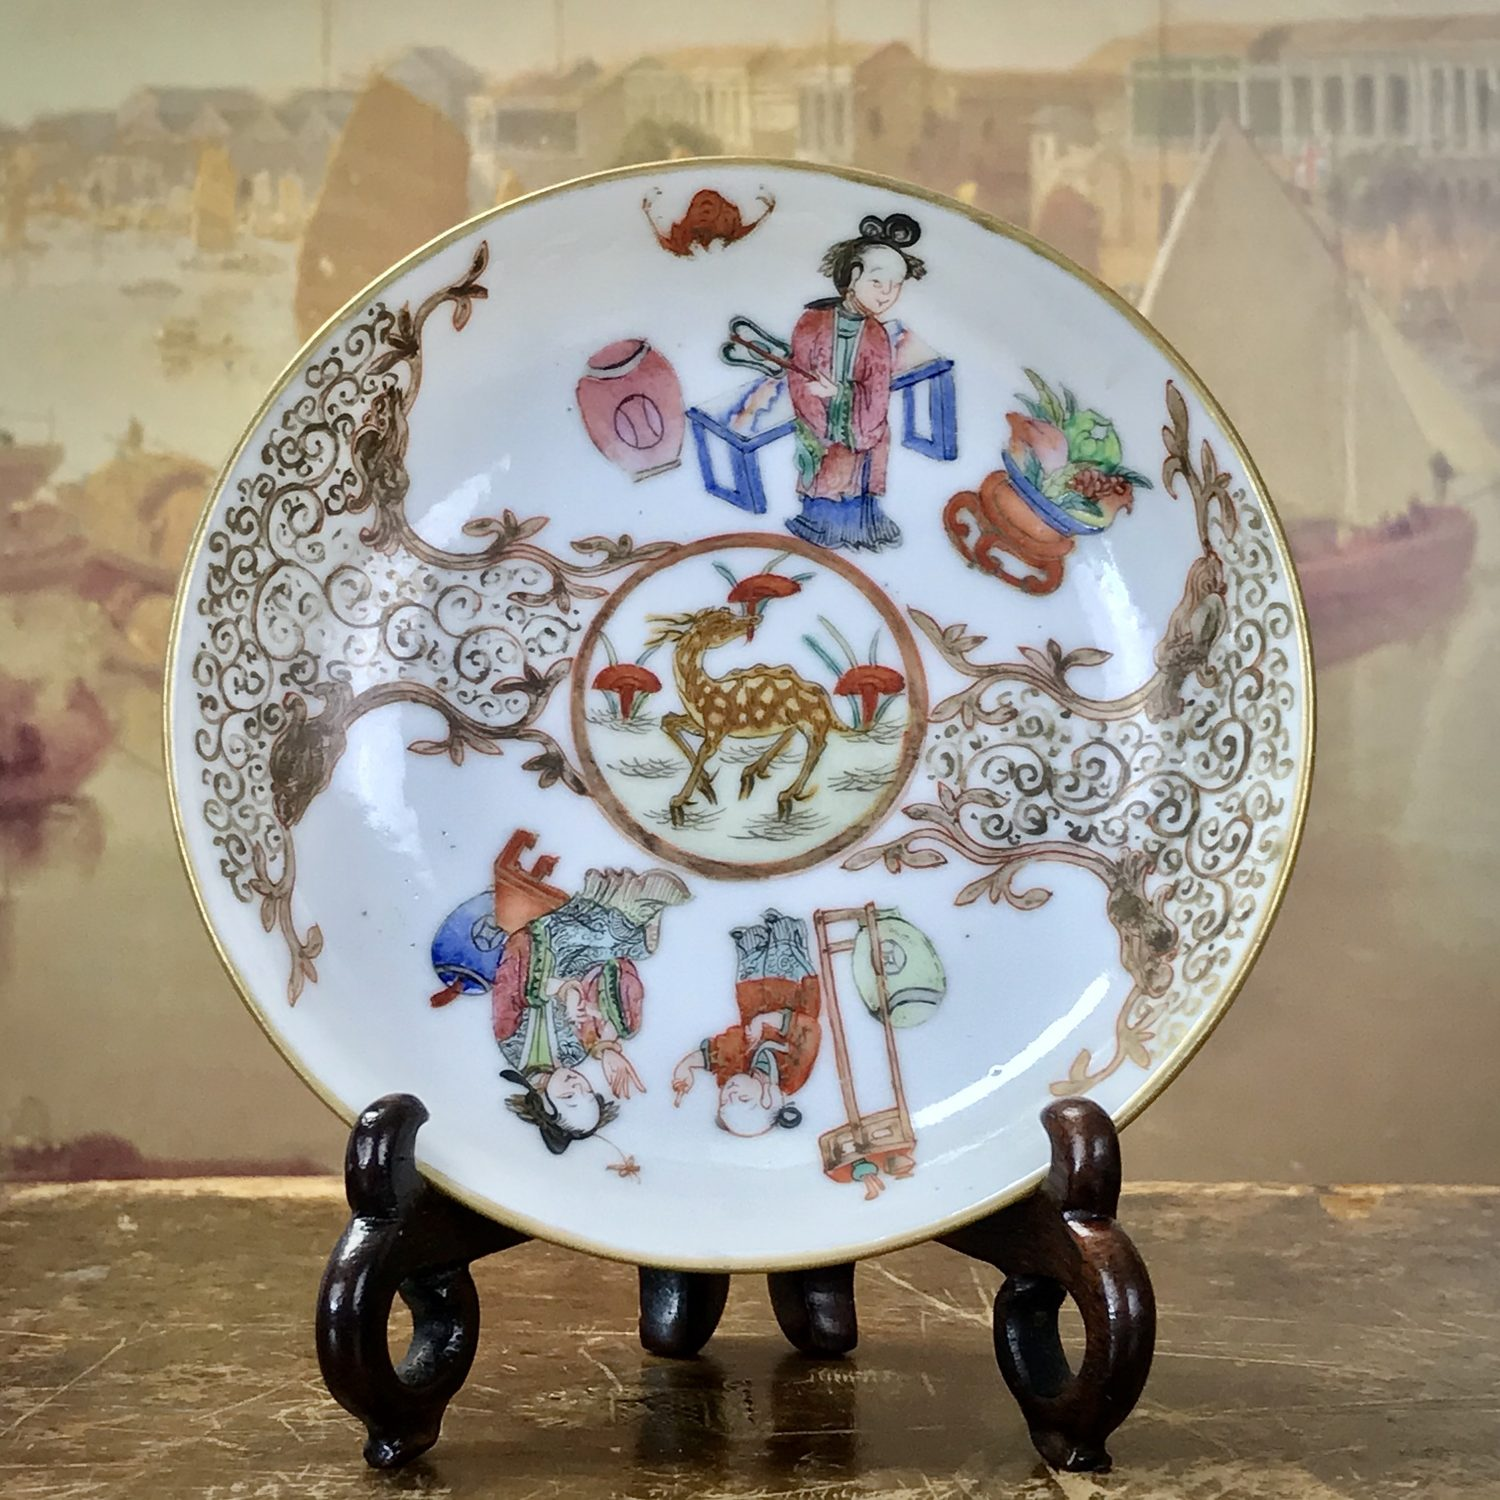 C18th Chinese Export Porcelain Famille Rose Saucer.